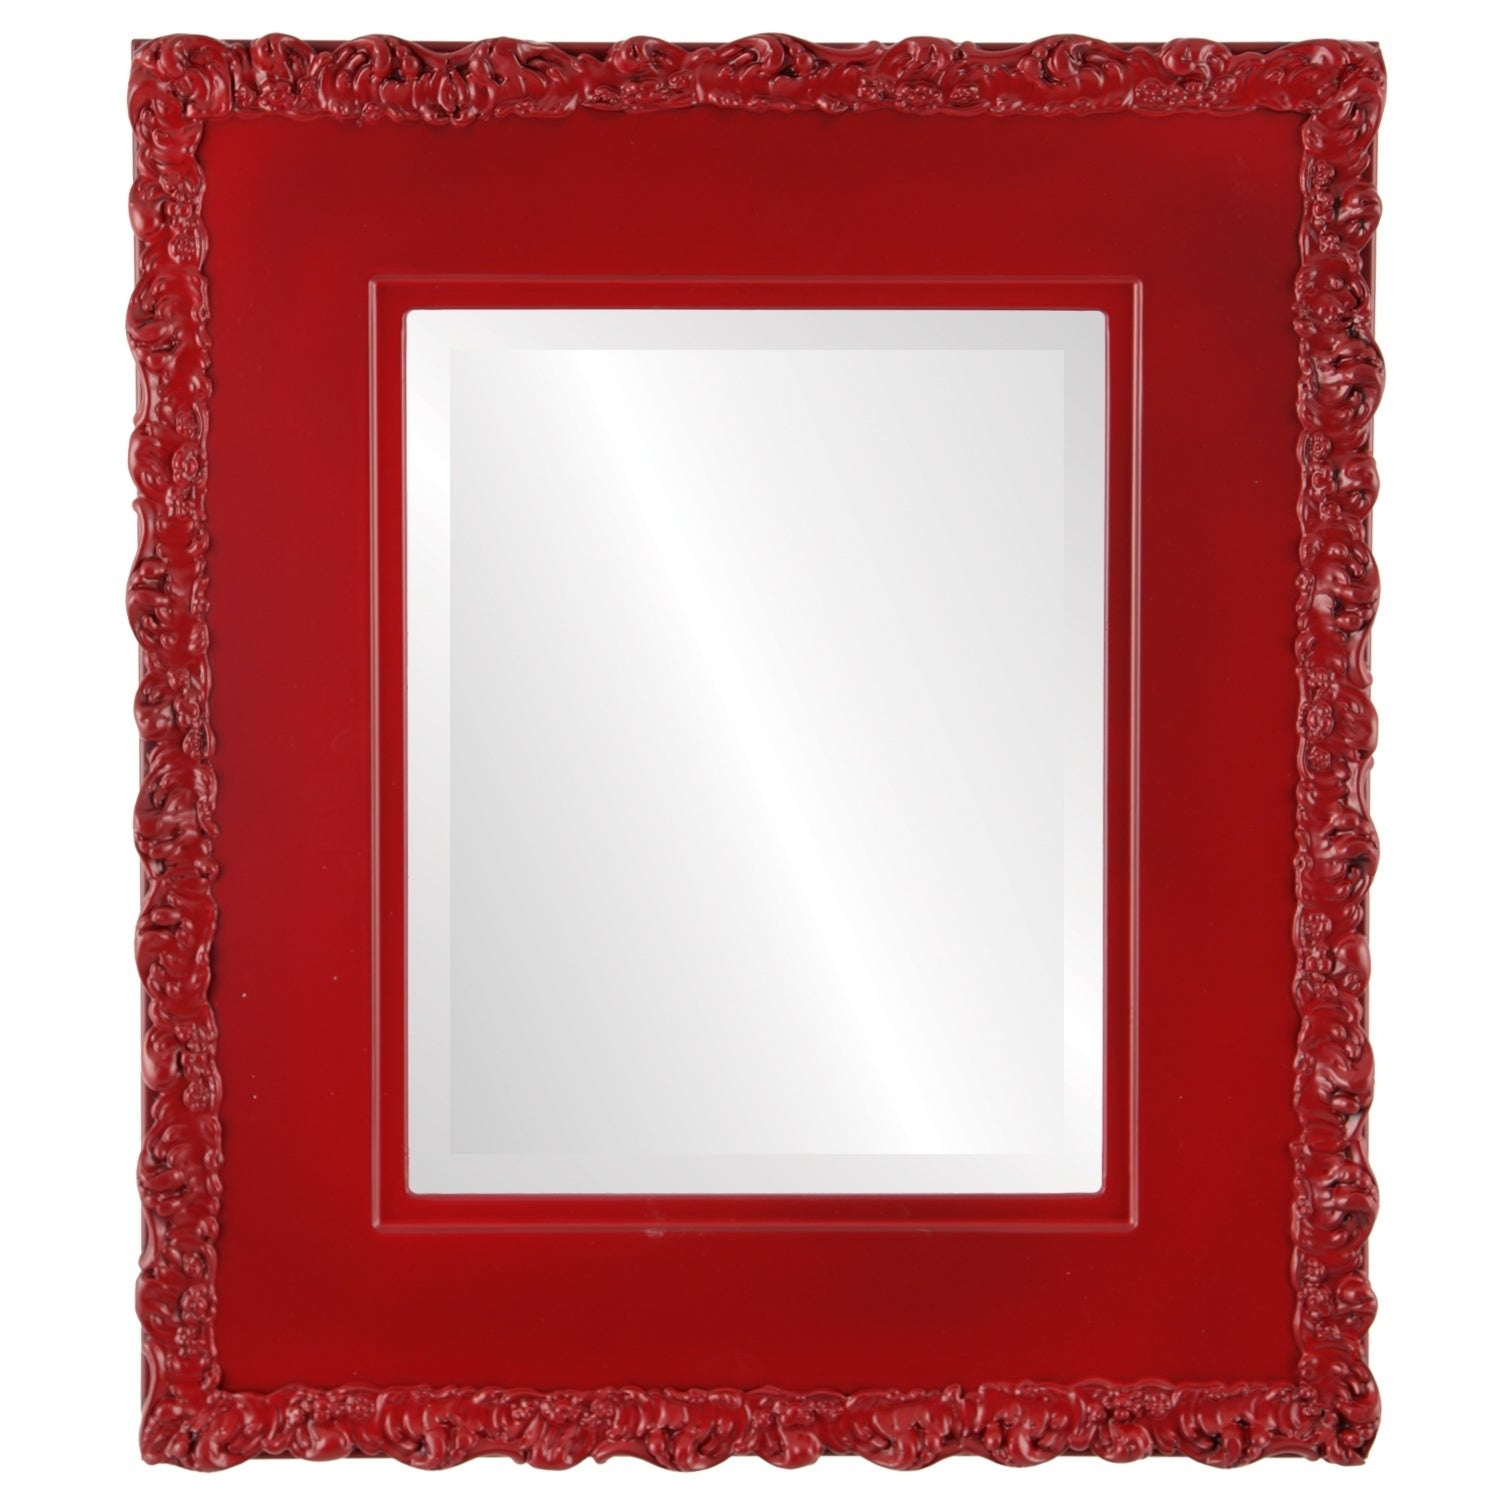 Williamsburg Framed Rectangle Mirror in Holiday Red (19x23 - Medium (15-32 high))